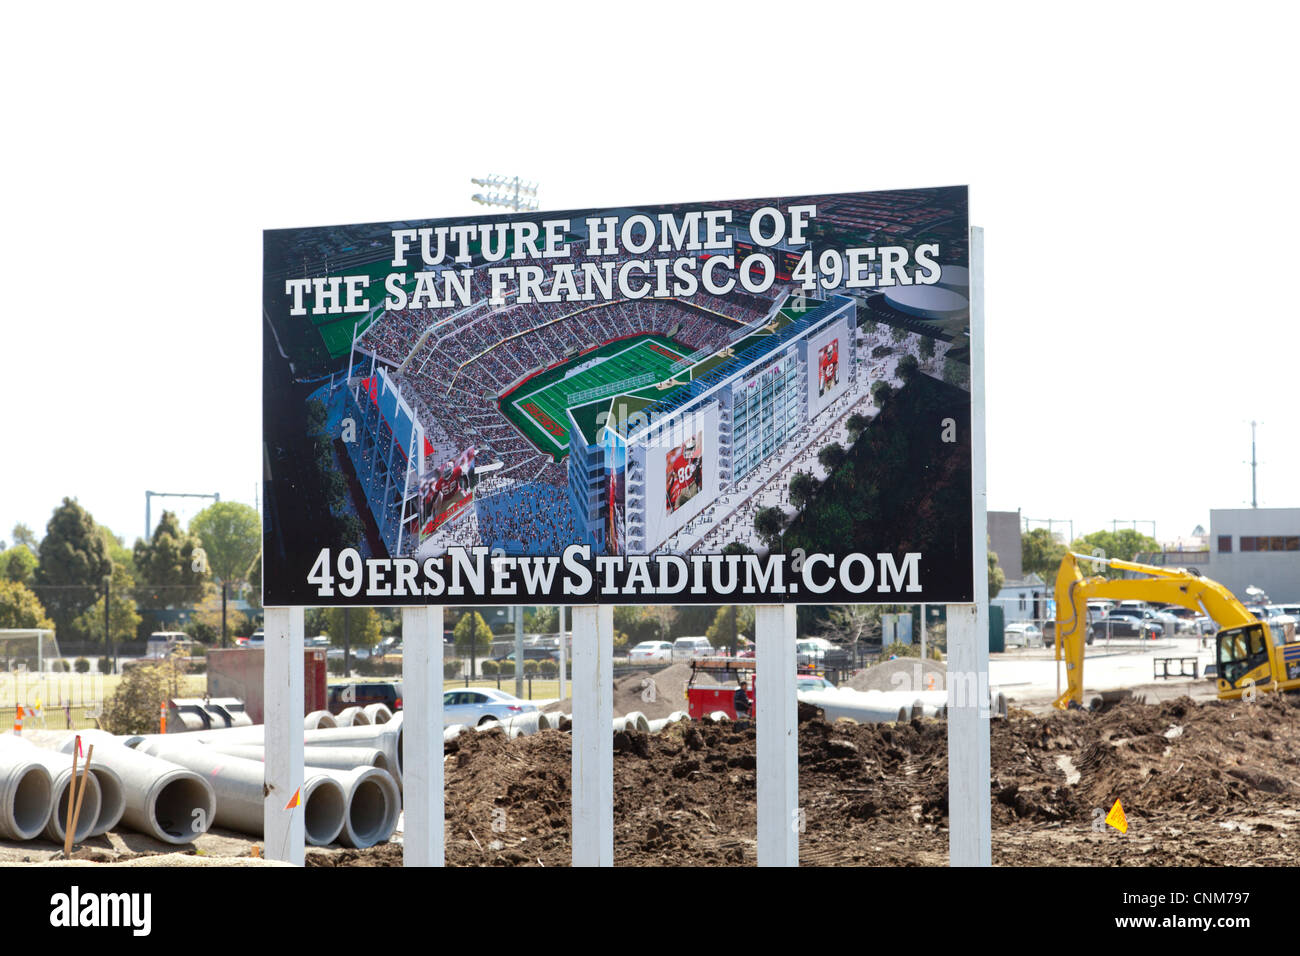 Future Home of the 49er Sign in front of stadium construction. - Stock Image